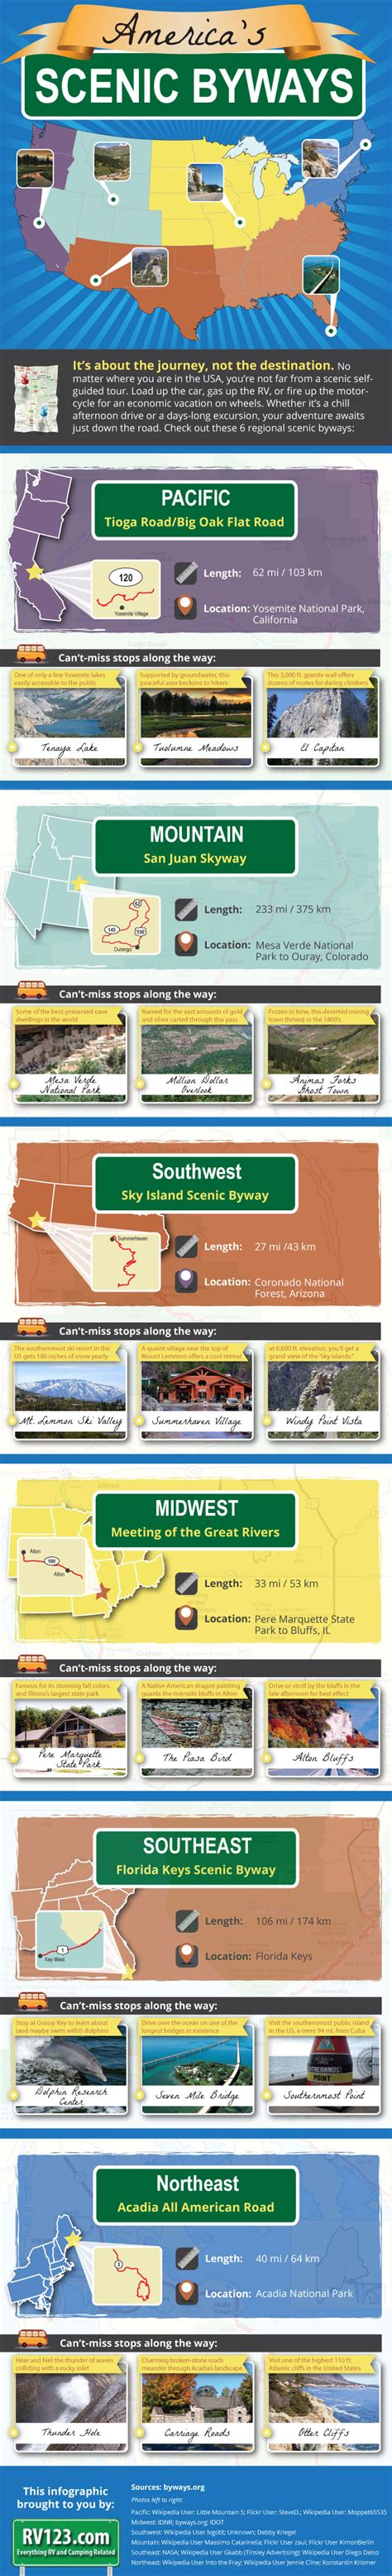 americas byways top u s scenic byways infographic